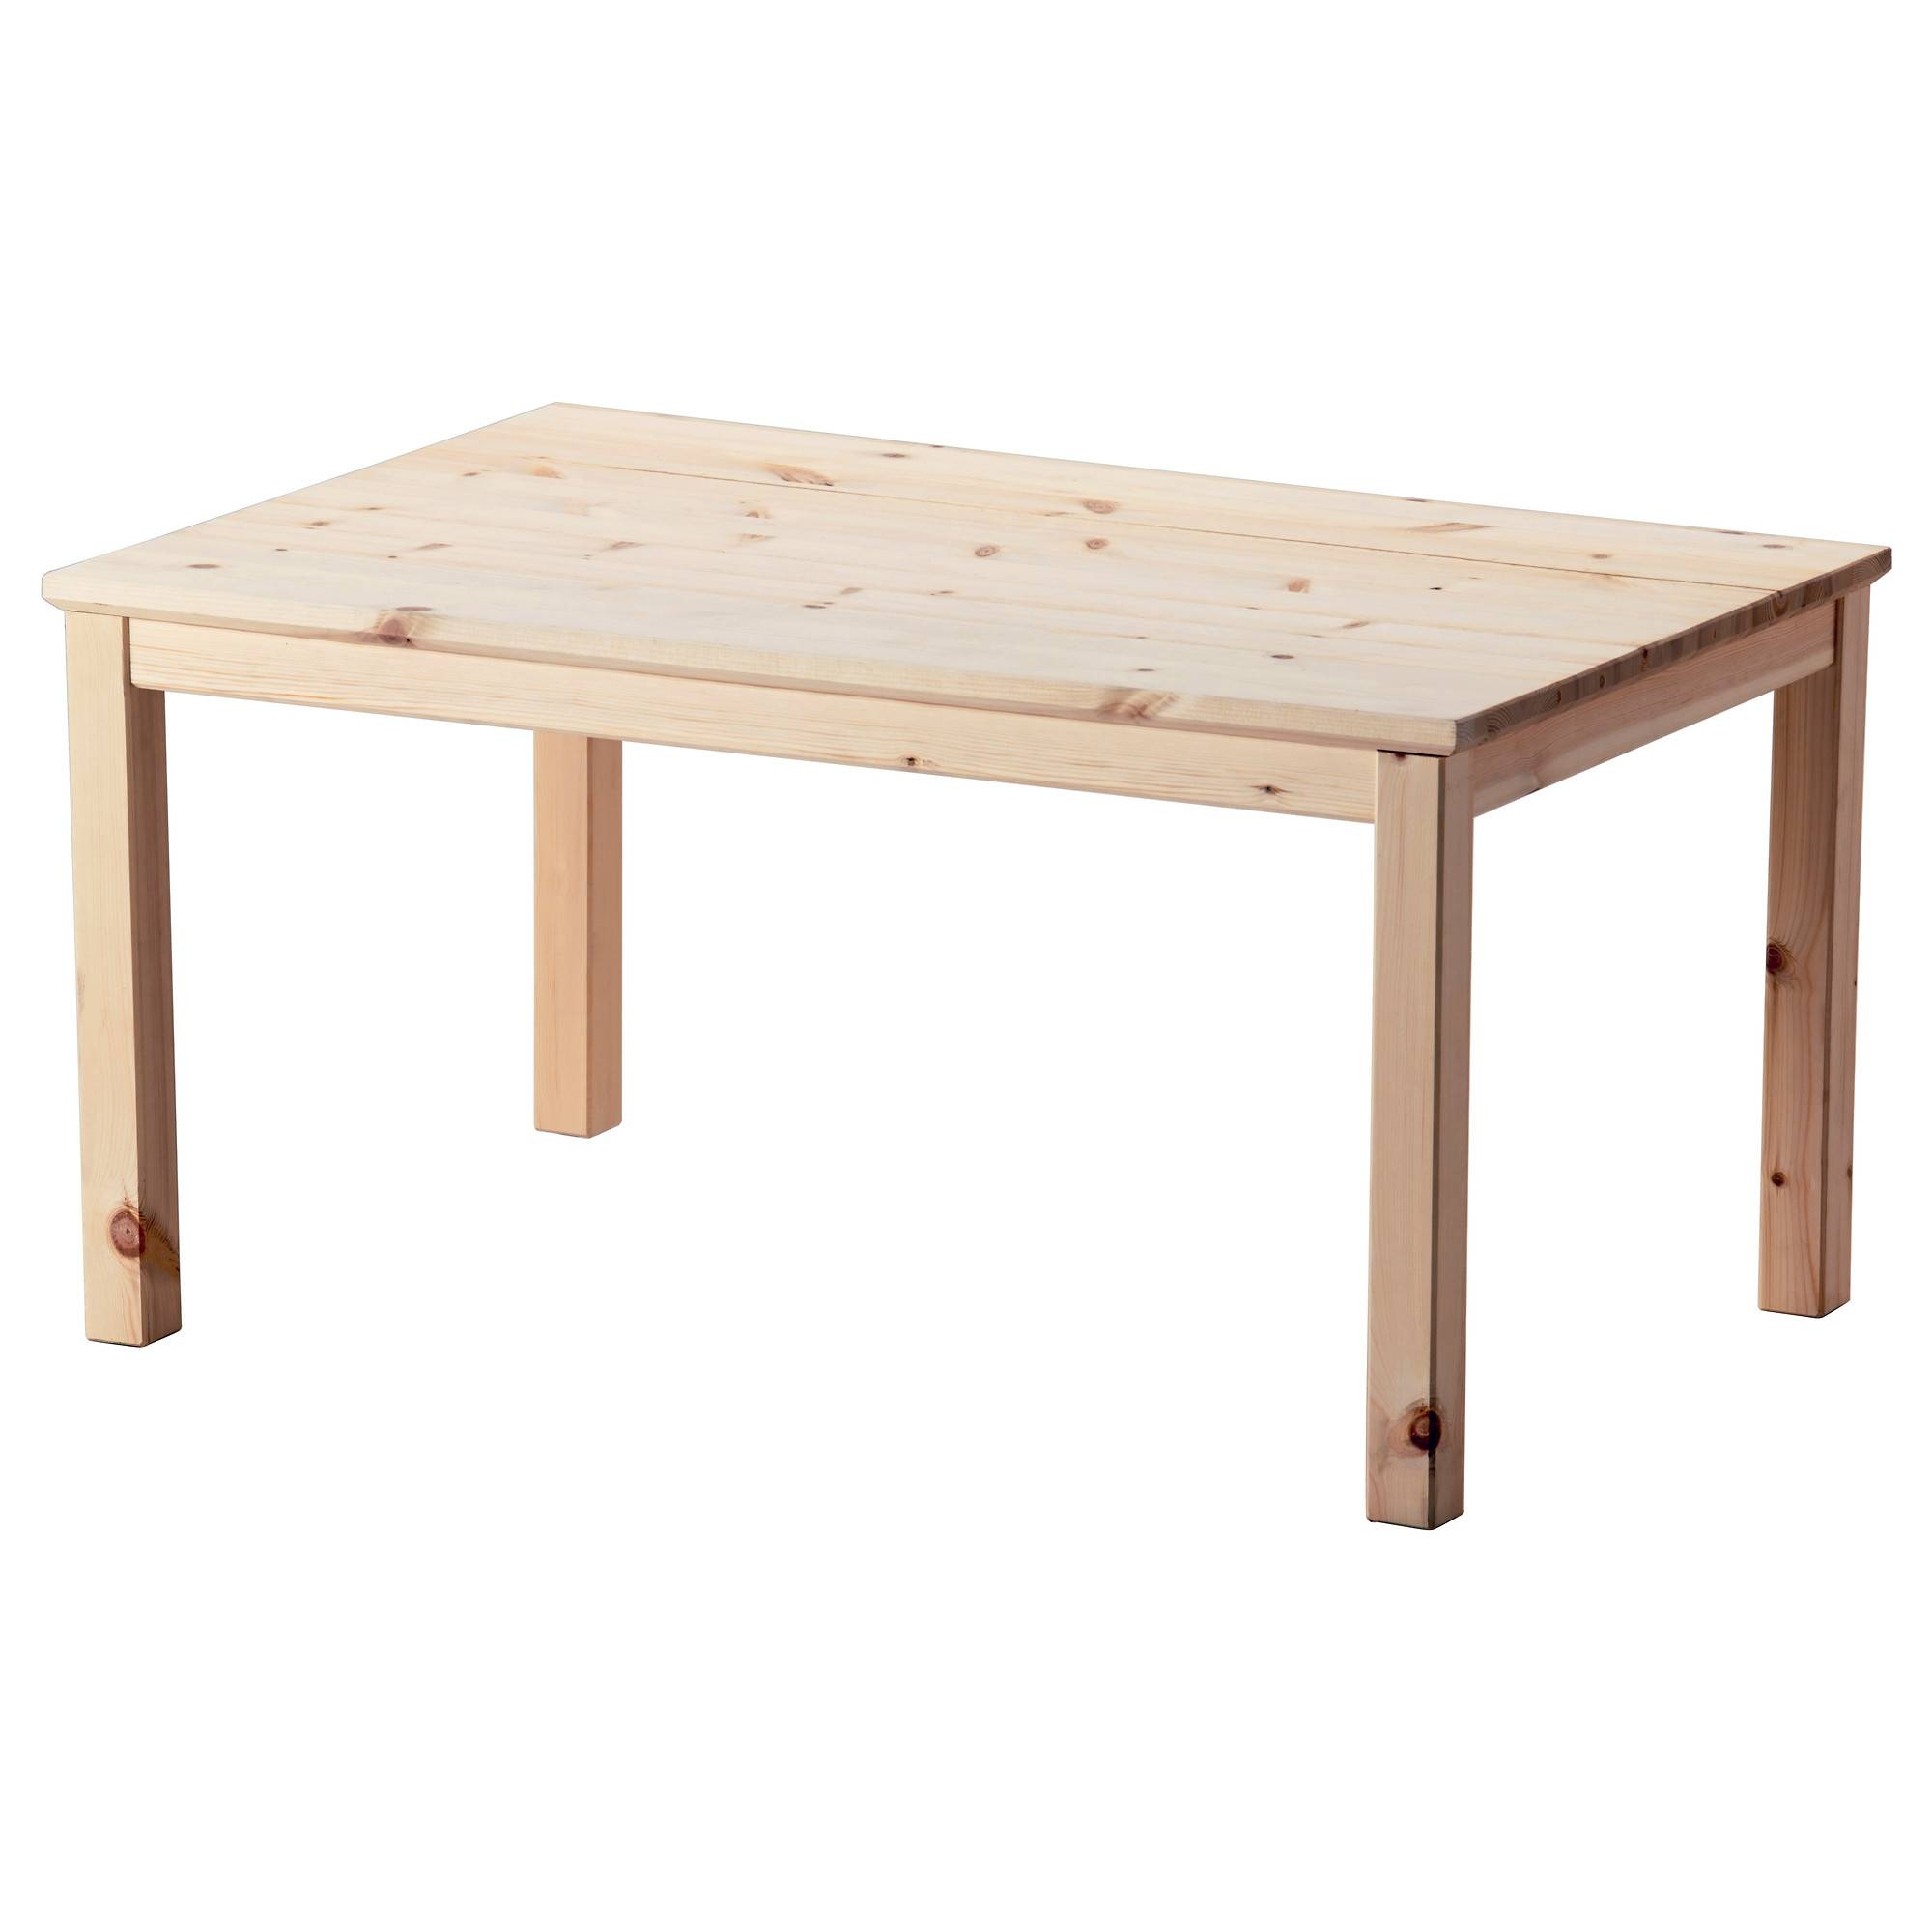 Nornäs Coffee Table Pine 89X59 Cm - Ikea throughout Wooden Coffee Tables (Image 10 of 15)